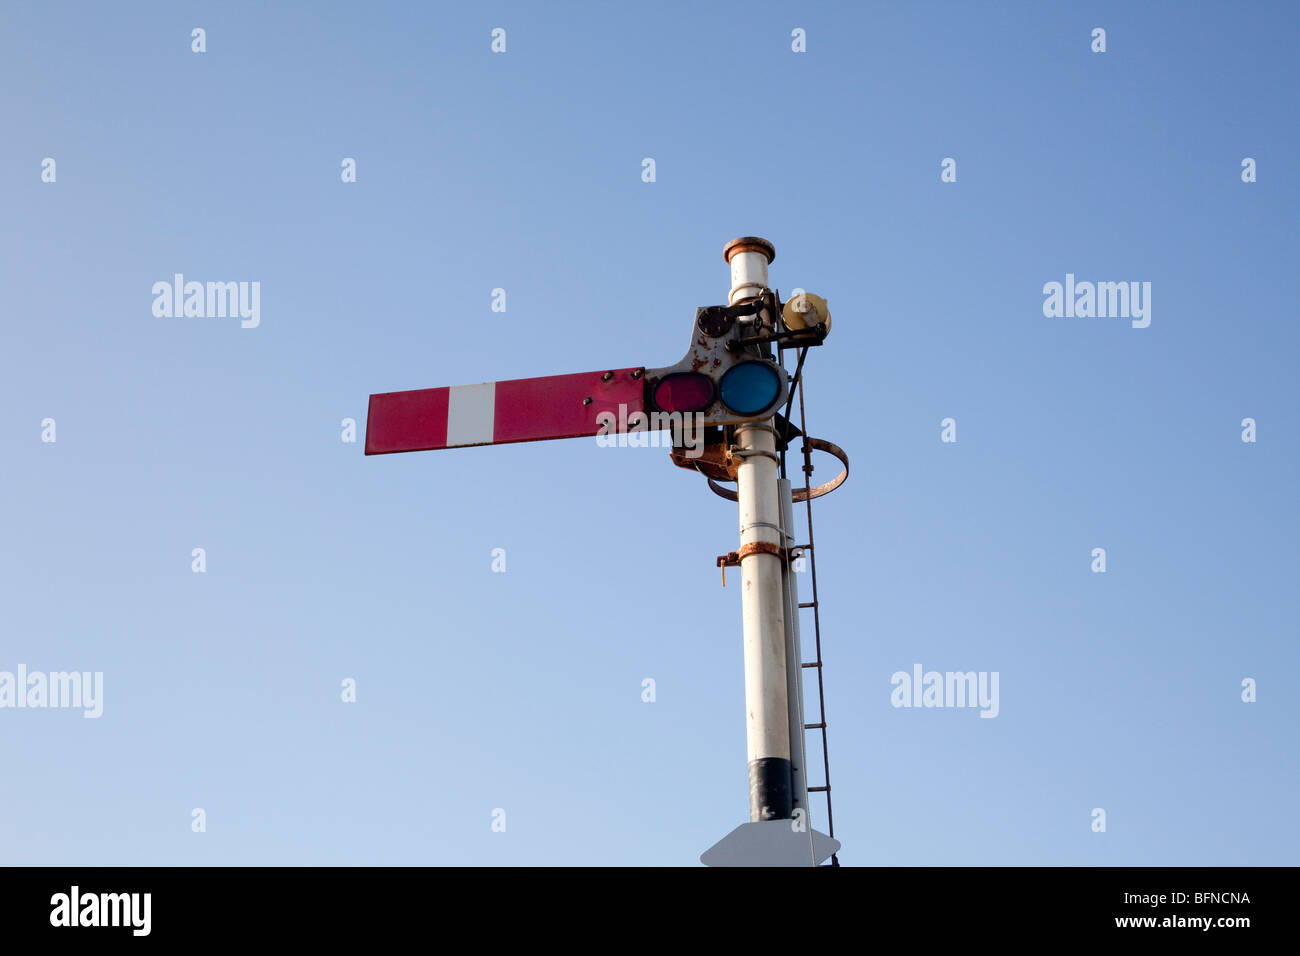 Railway semaphore stop signal in the on position in North Wales station Stock Photo